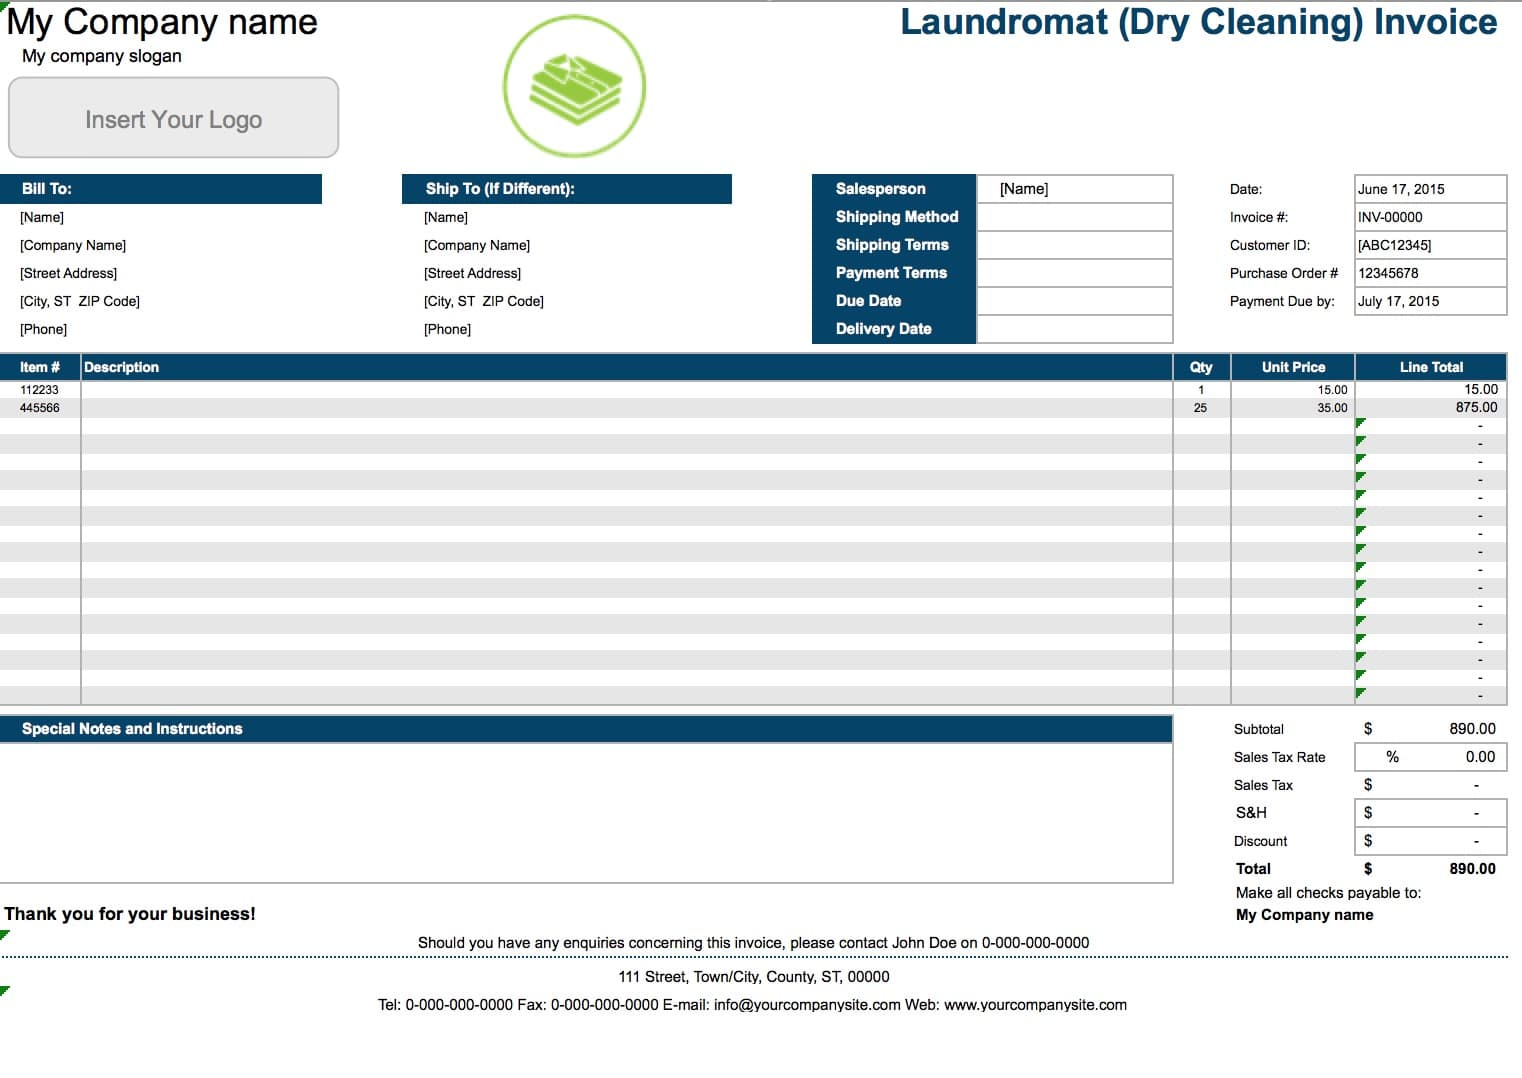 Free Laundromat Dry Cleaning Invoice Template Excel PDF Word - Create invoice receipt